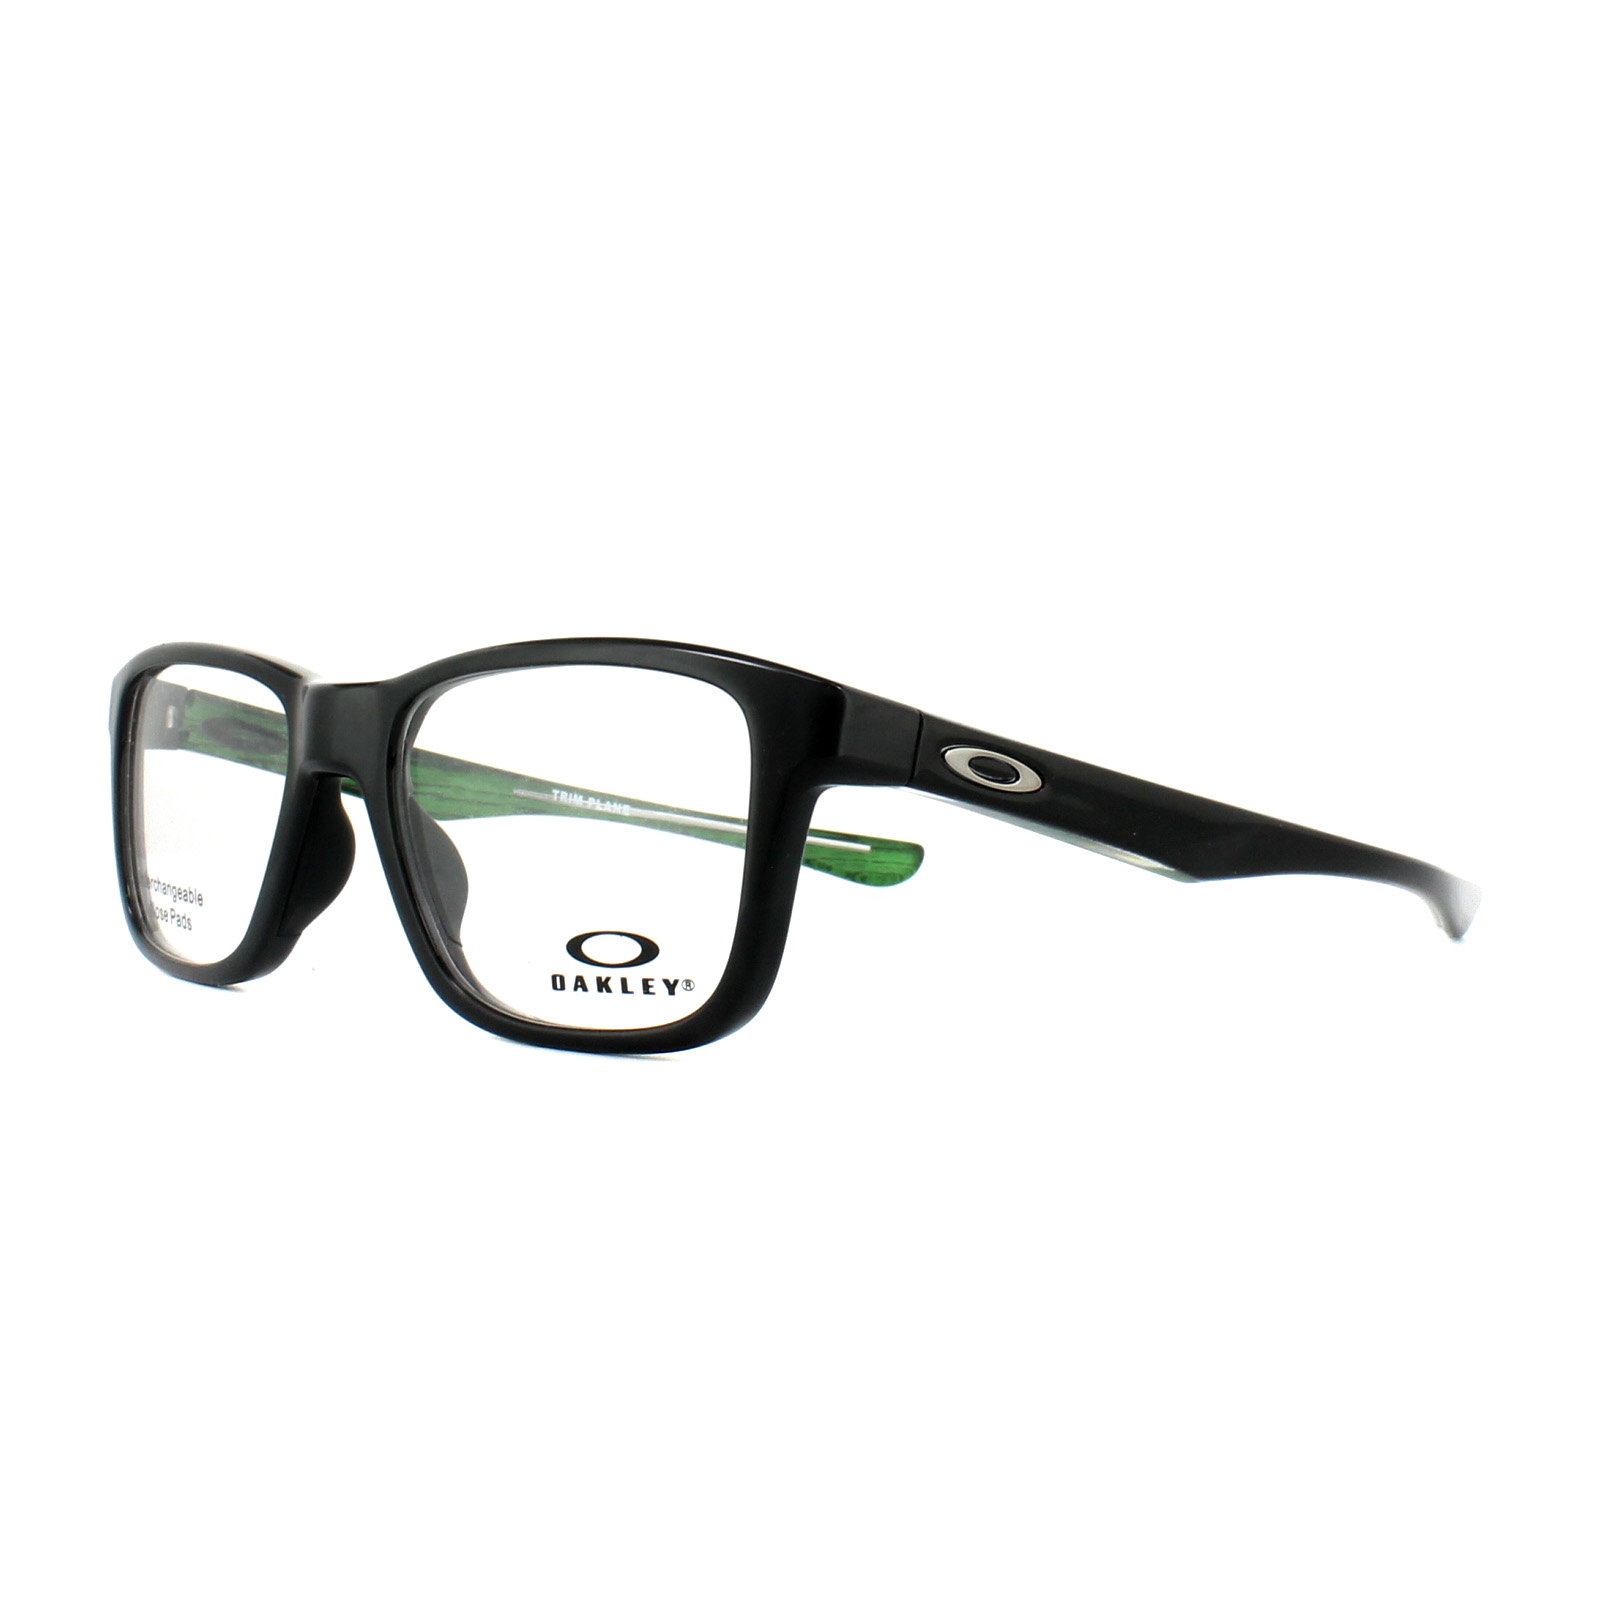 41665e304d Sentinel Oakley Glasses Frames Trim Plane OX8107-02 Polished Black 51mm Mens